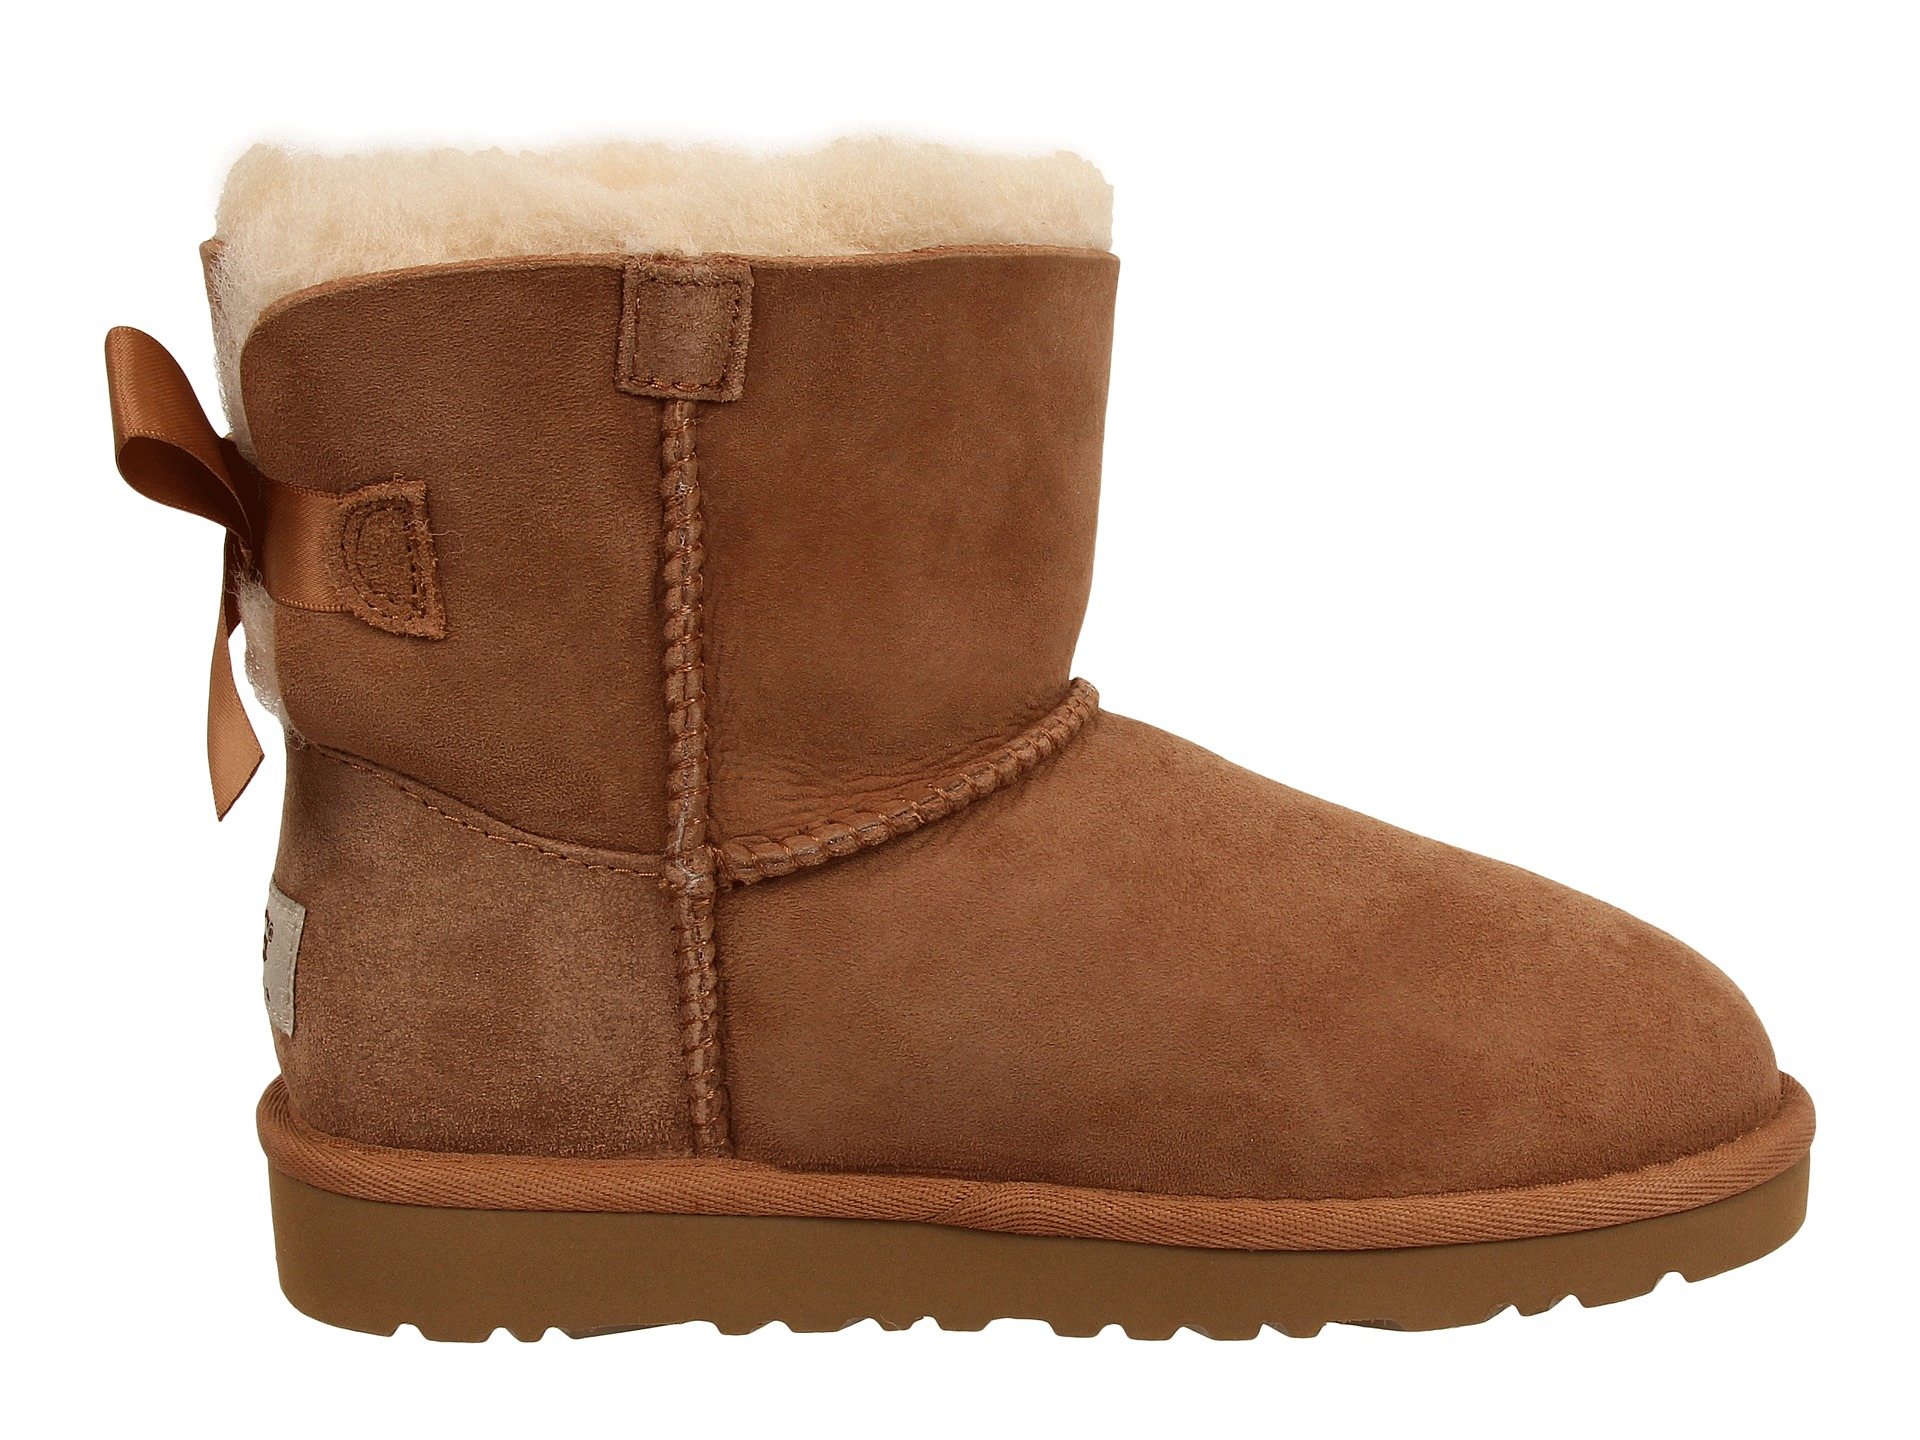 ugg bailey bow size 5